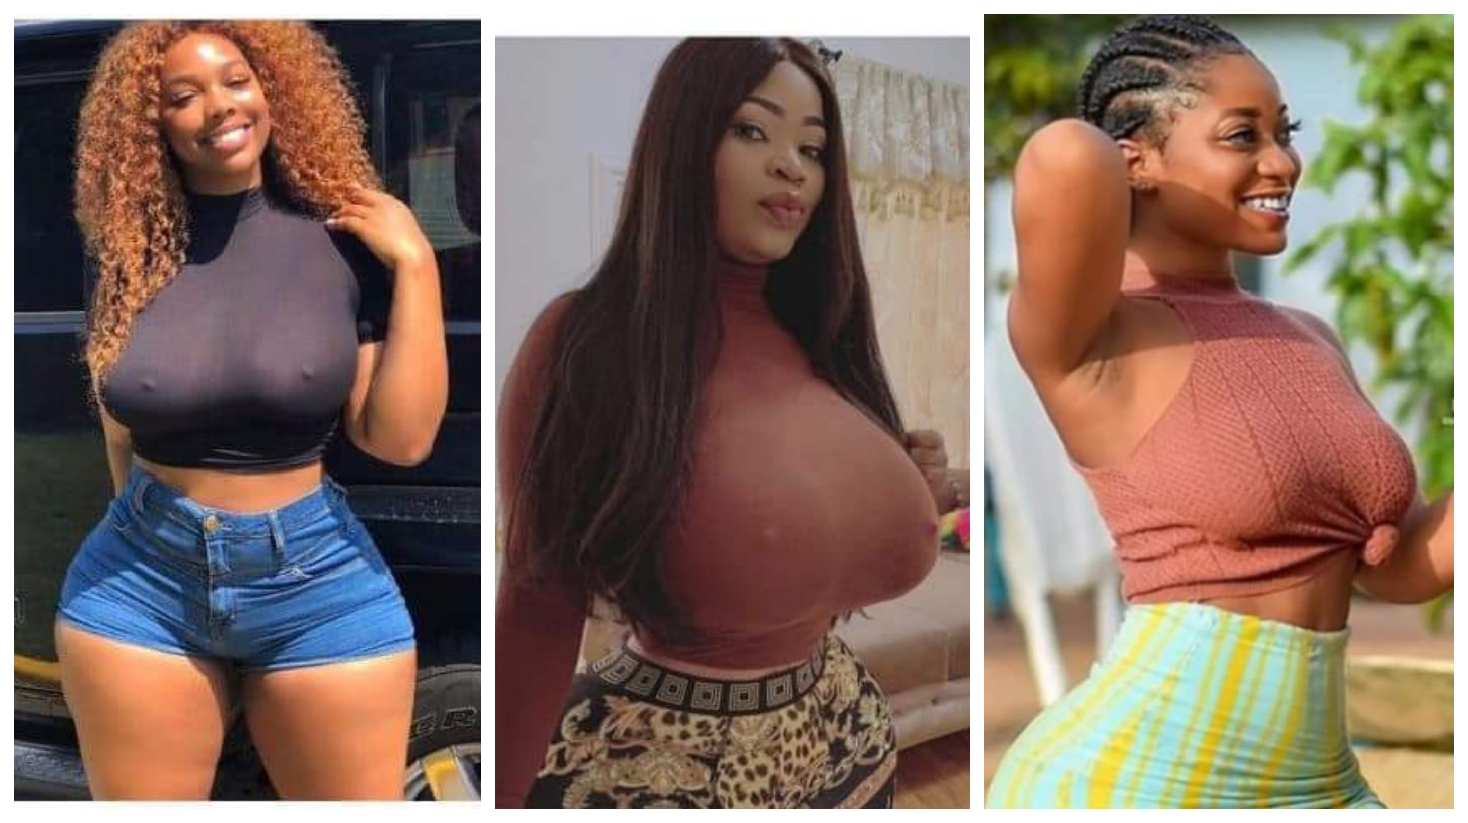 NoBraDay 2021: Nigerian Beautiful Women, Others Mark 'No Bra Day' In Grand style (Photos) - Gist Cent